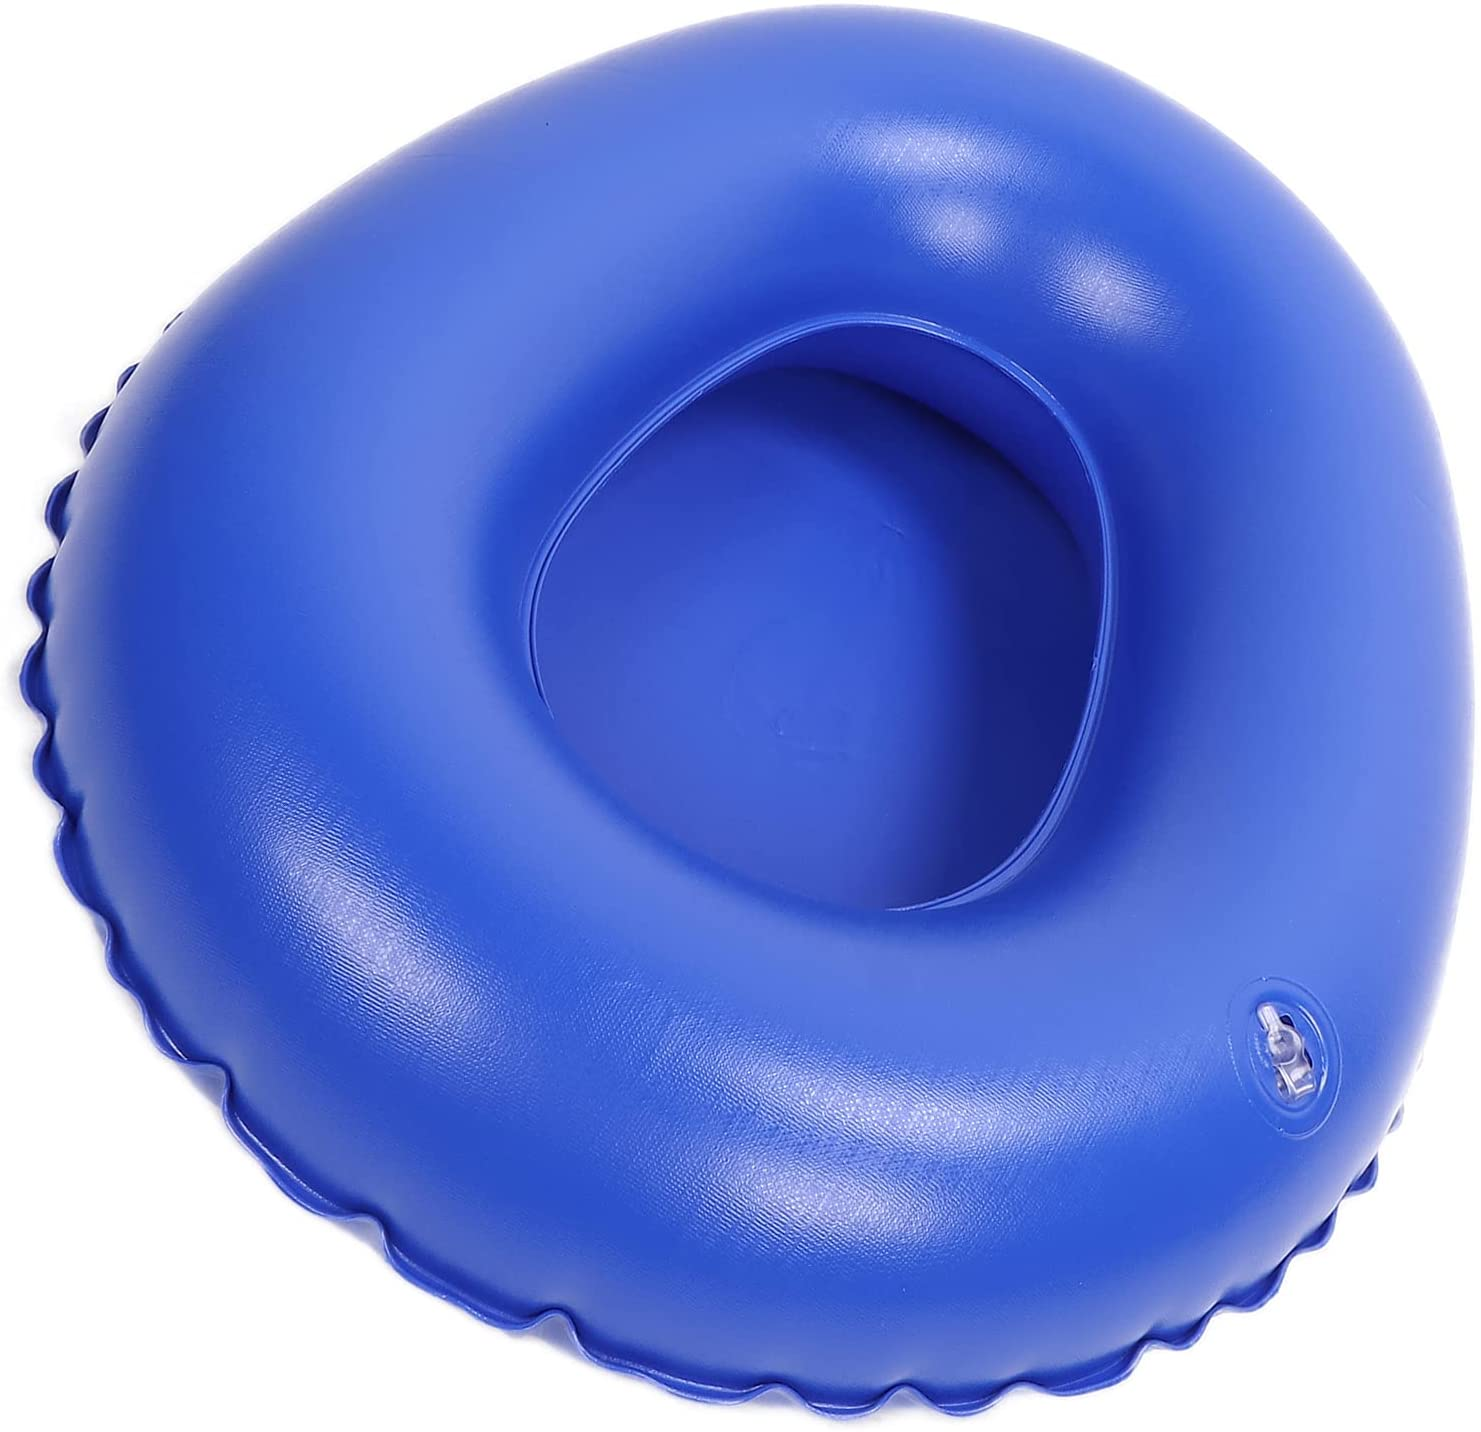 SALUTUY Portable Air Bedpan Small Portative Ranking TOP4 Translated Compact Nflata Blue